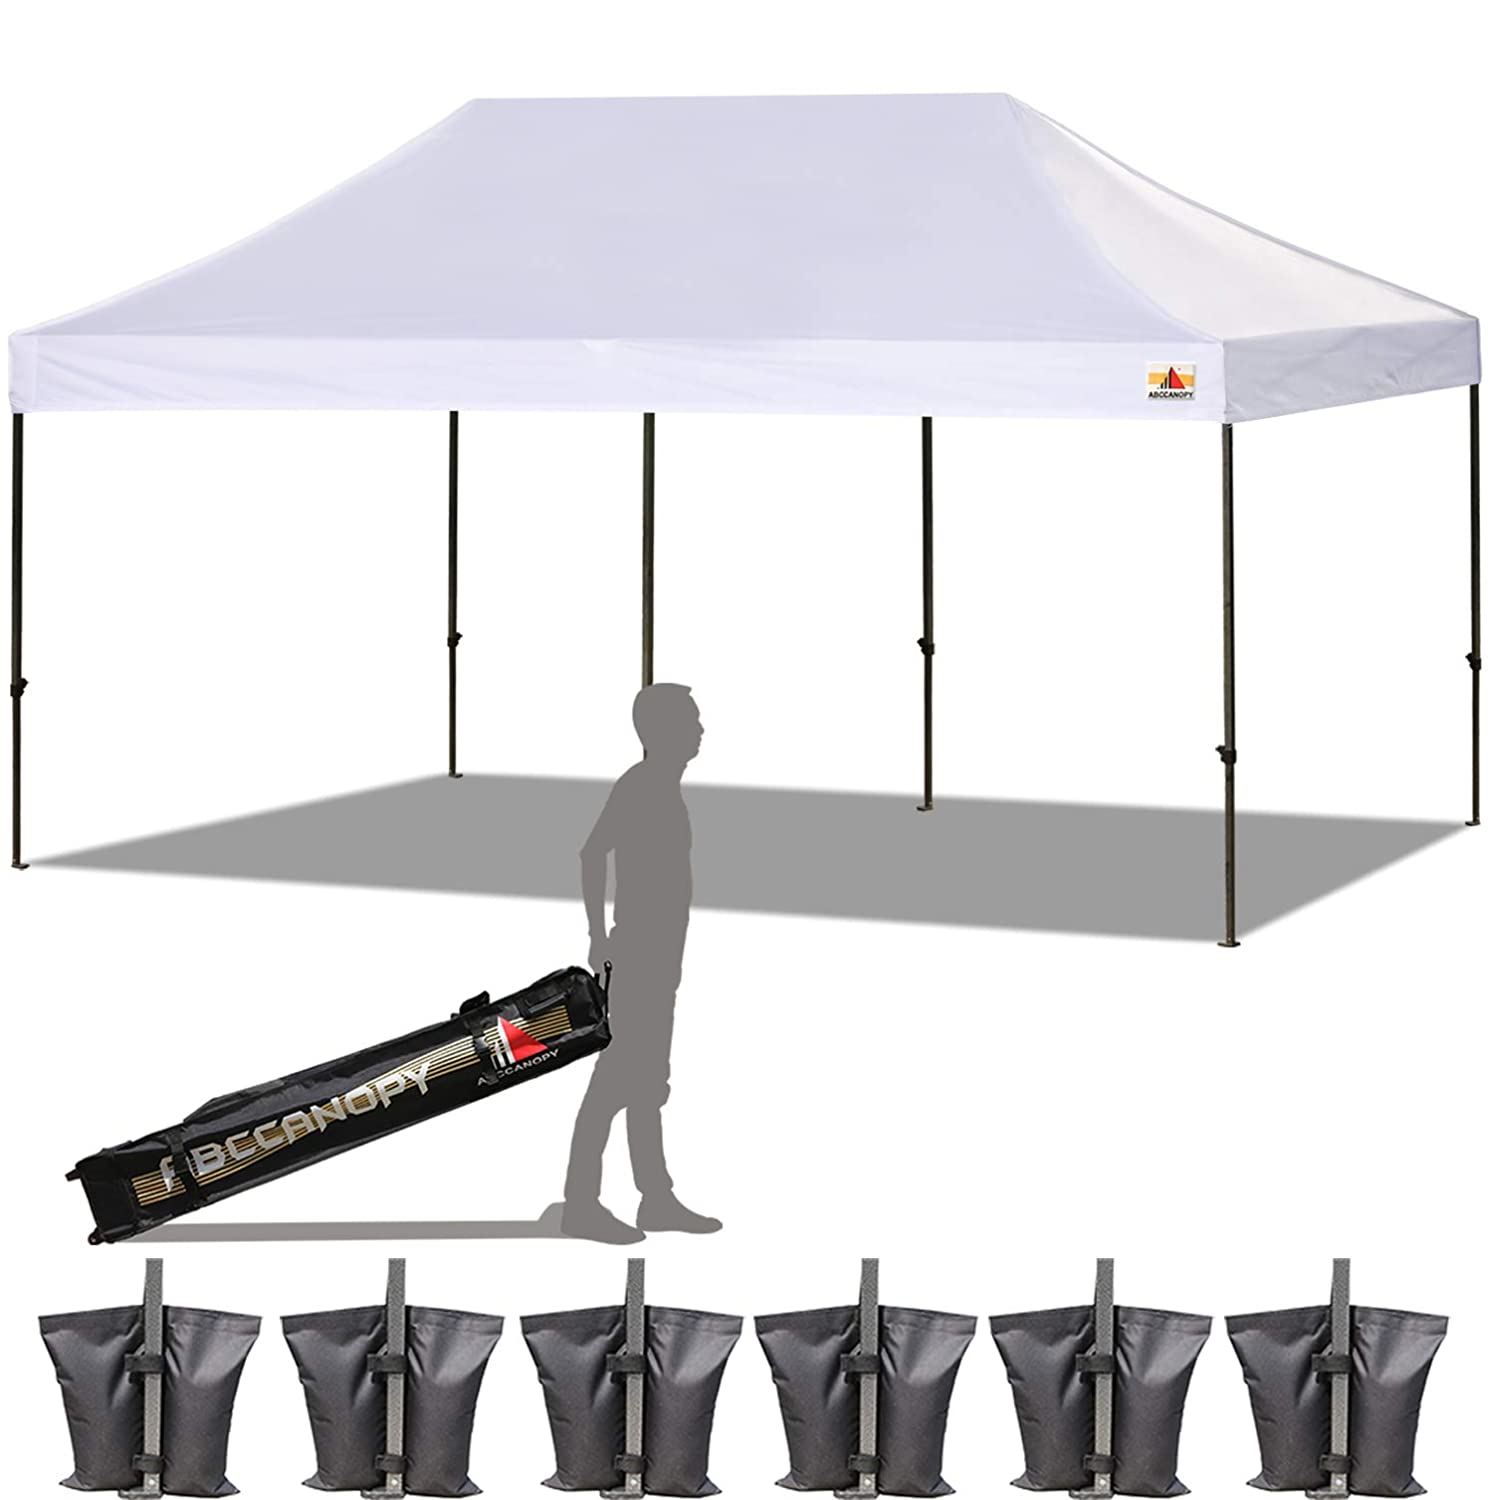 ABCCANOPY 23 Colors 10×20 Pop up Tent Instant Canopy Commercial Outdoor Canopy with Wheeled Carry Bag Bonus 6 Weight Bags White